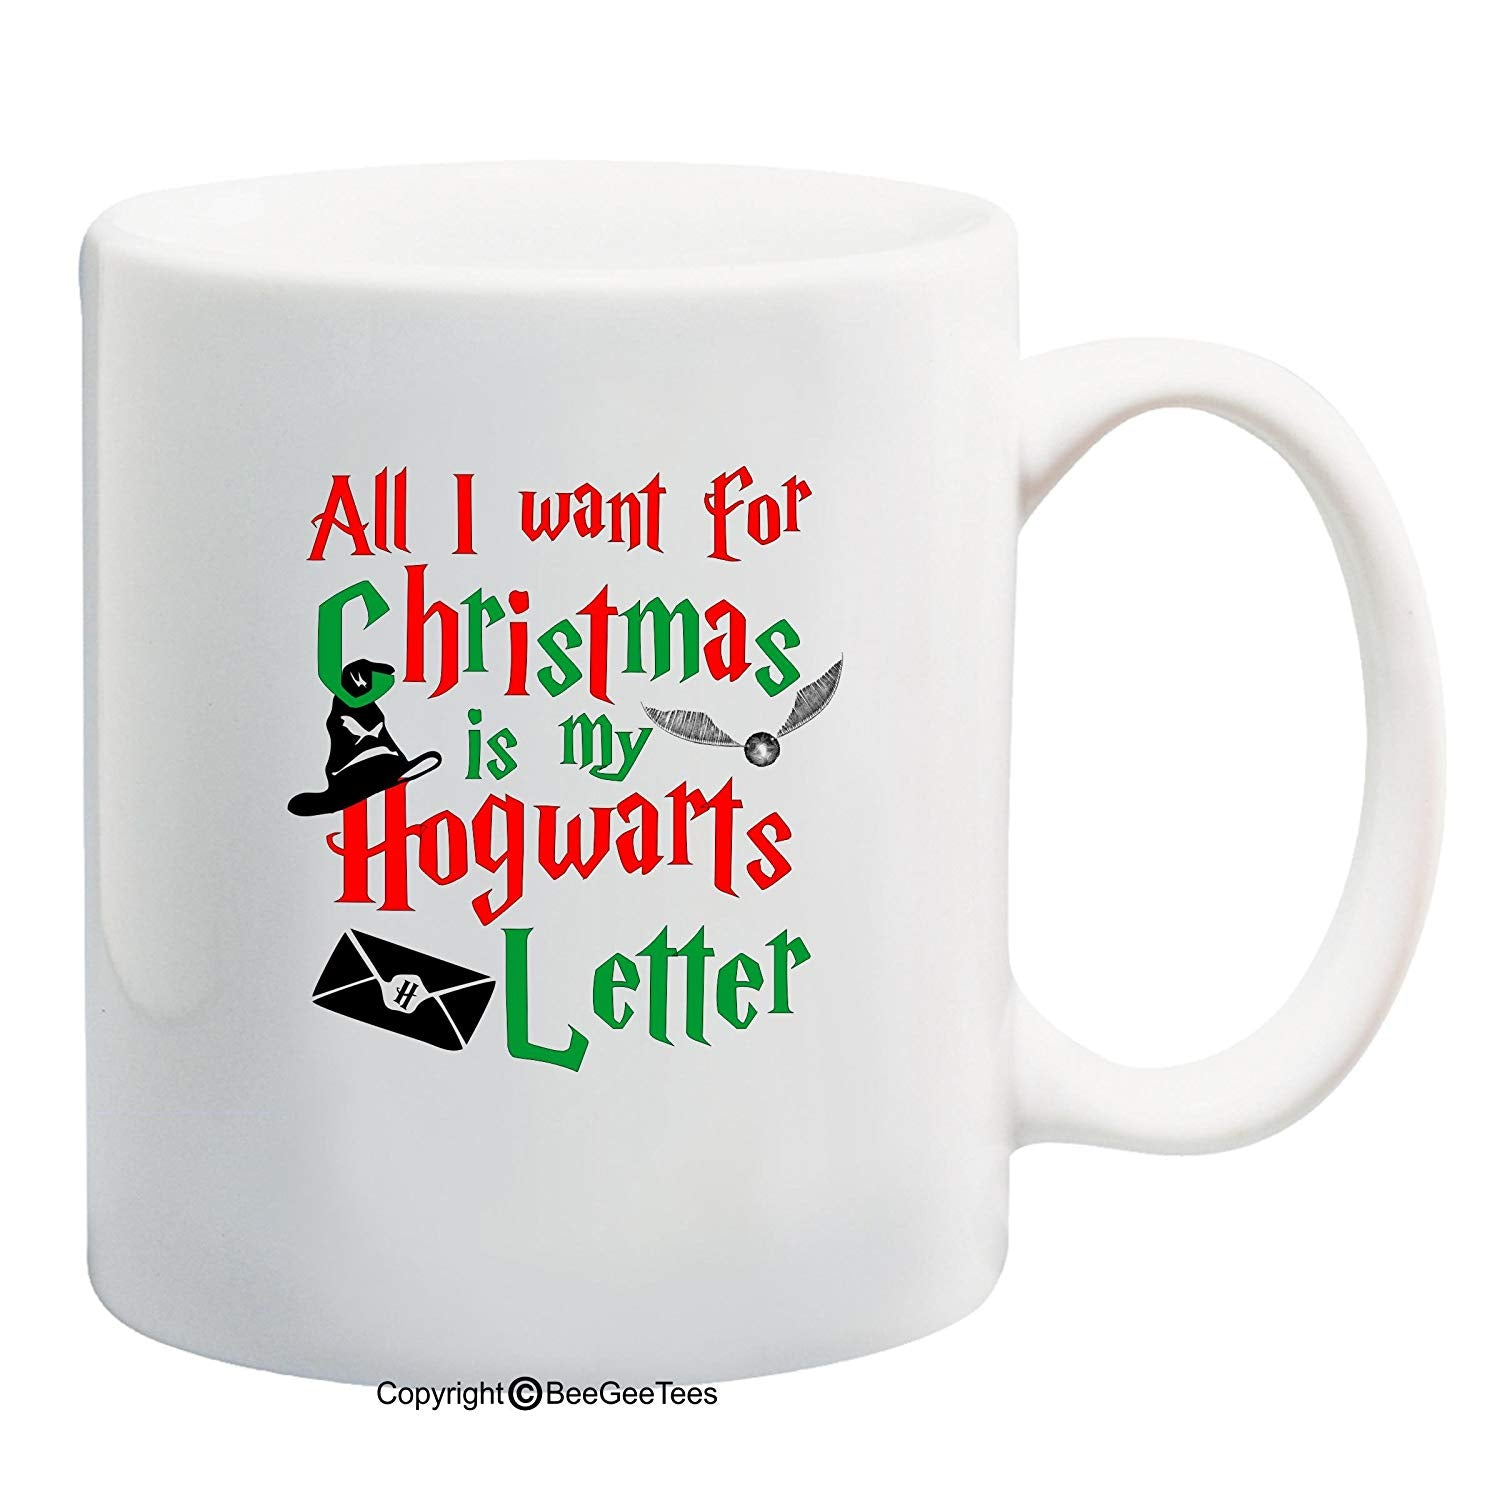 All I Want For Christmas Is My Hogwarts Letter Funny Coffee Mug or Tea Cup by BeeGeeTees